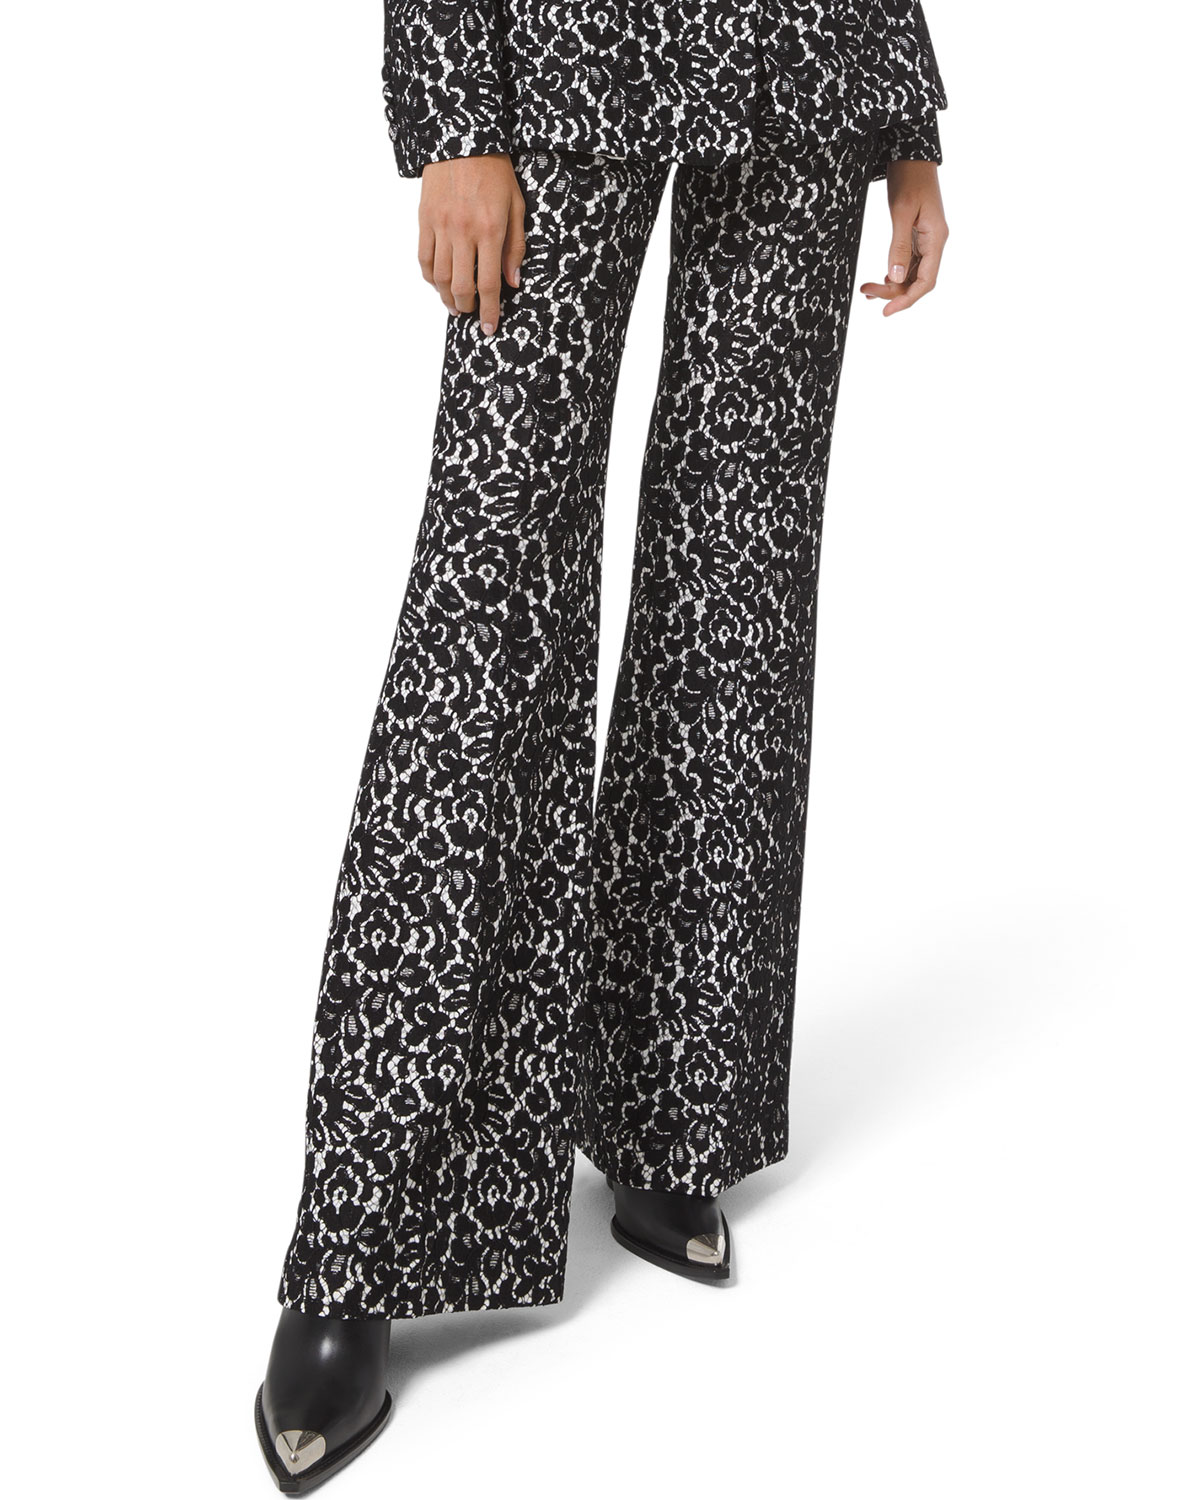 Michael Kors Collection Brooke Bonded Lace Side-Zip Pants